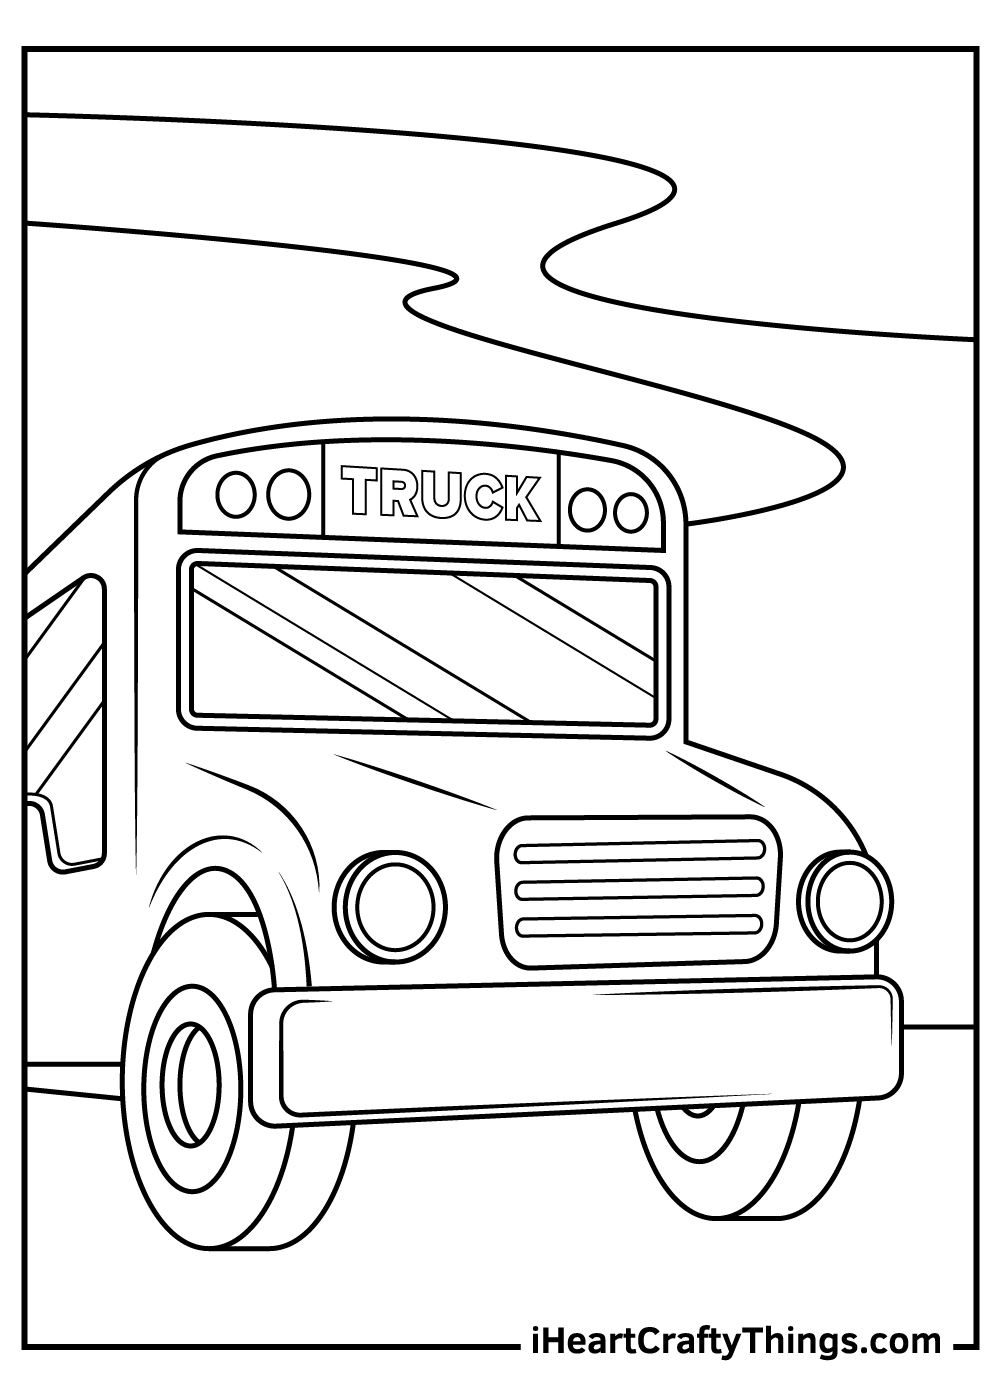 truck coloring pages for kids free printables